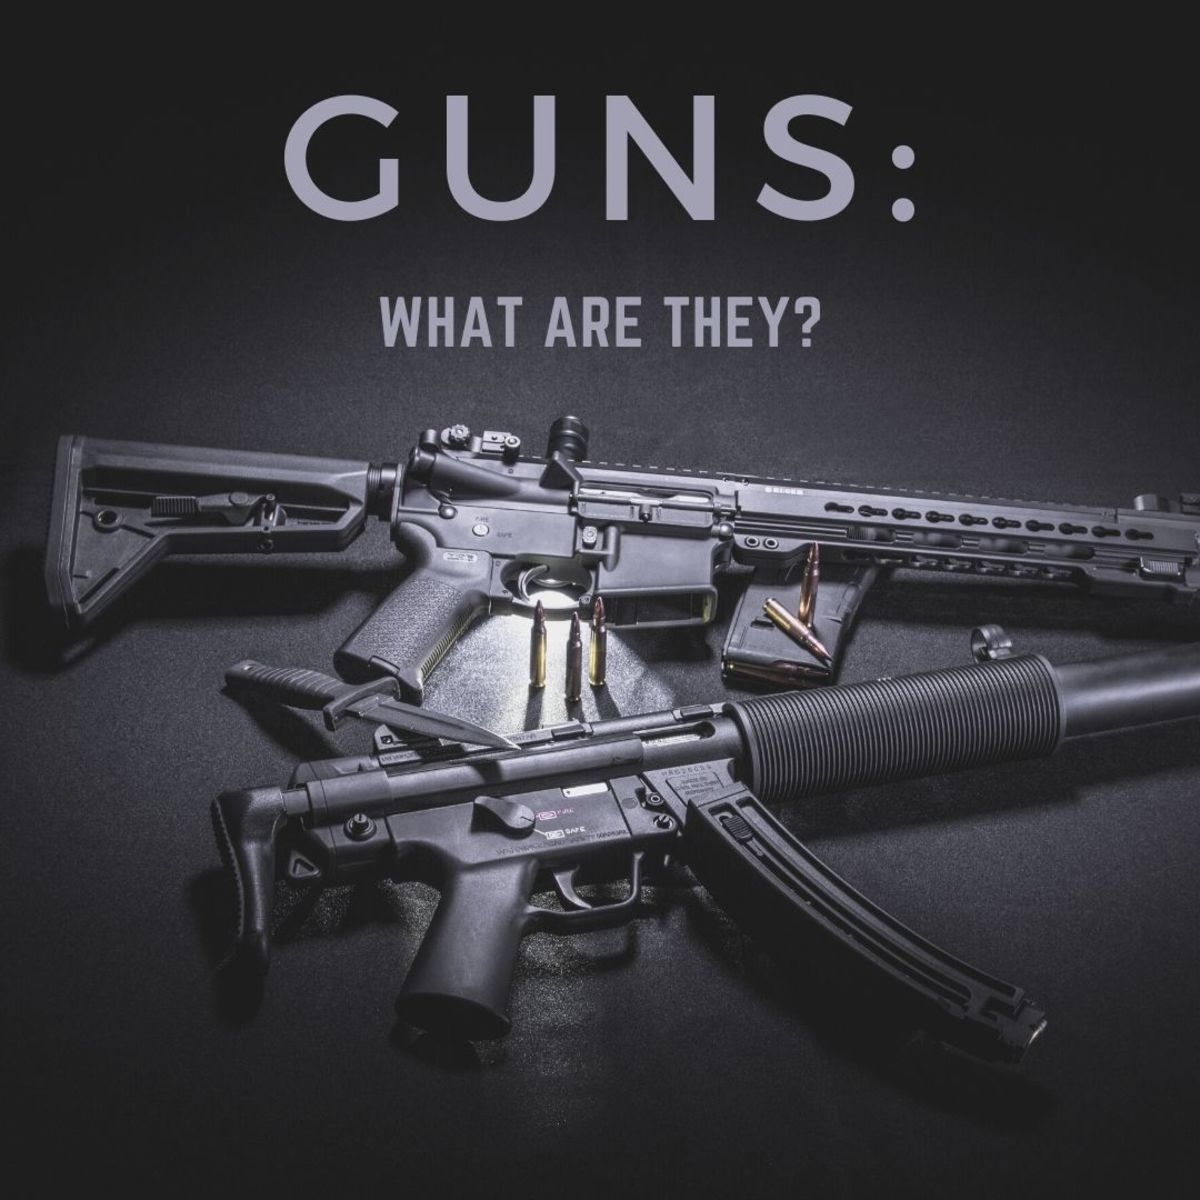 What exactly is a gun?